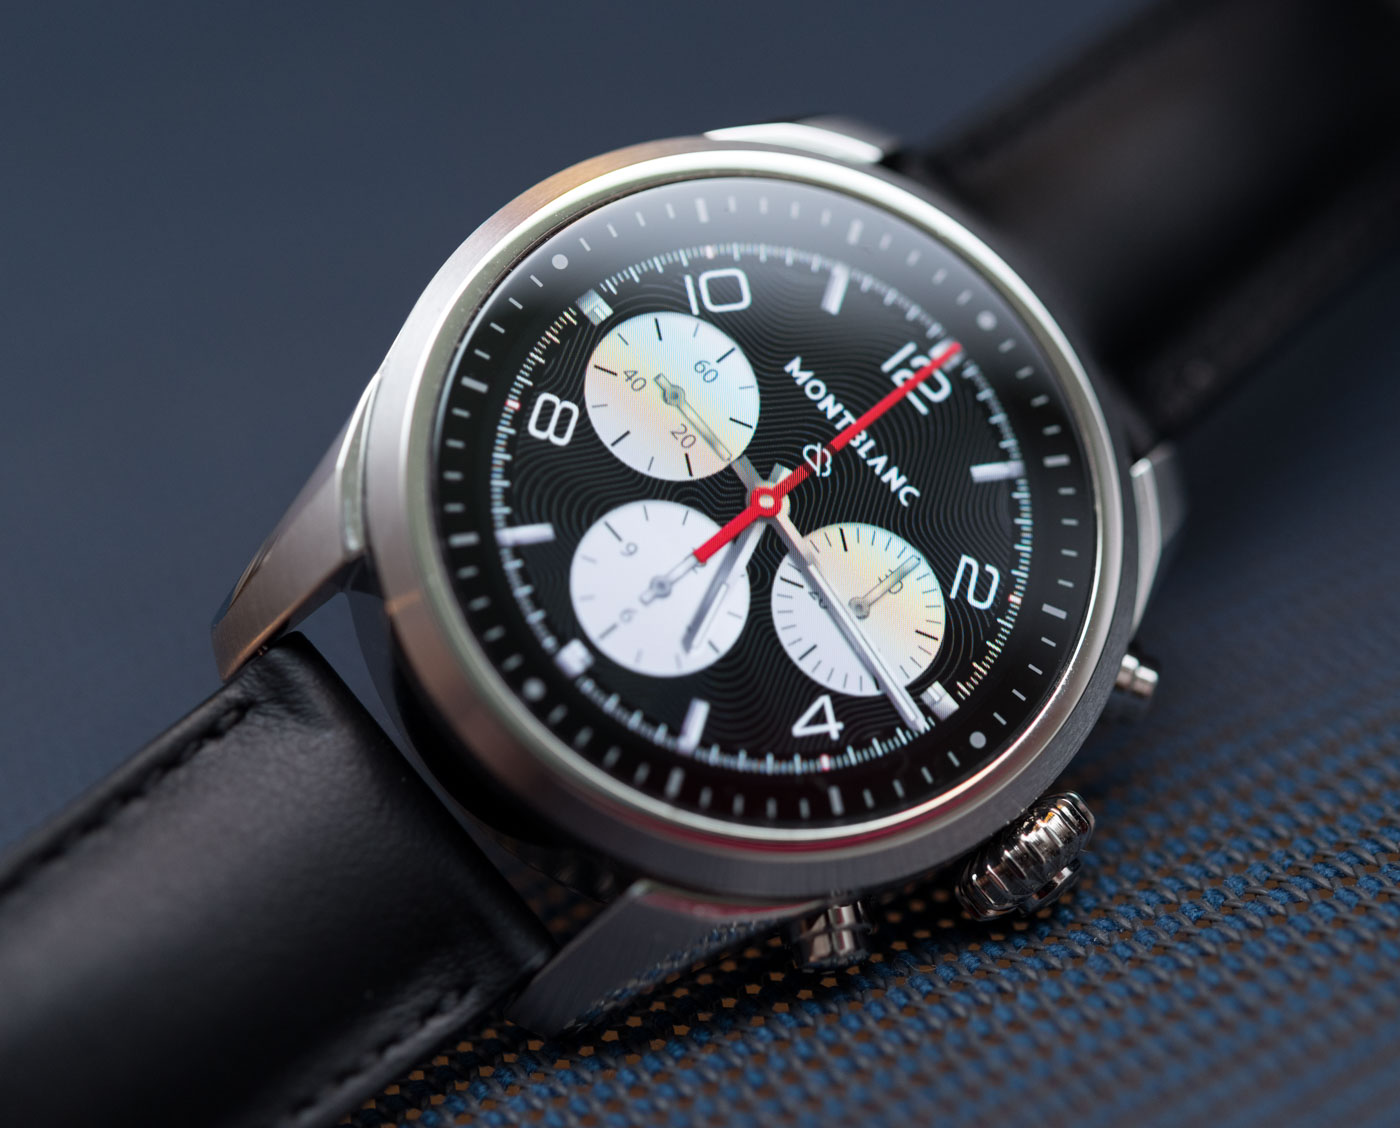 Montblanc Summit II review – Lost In Mobile